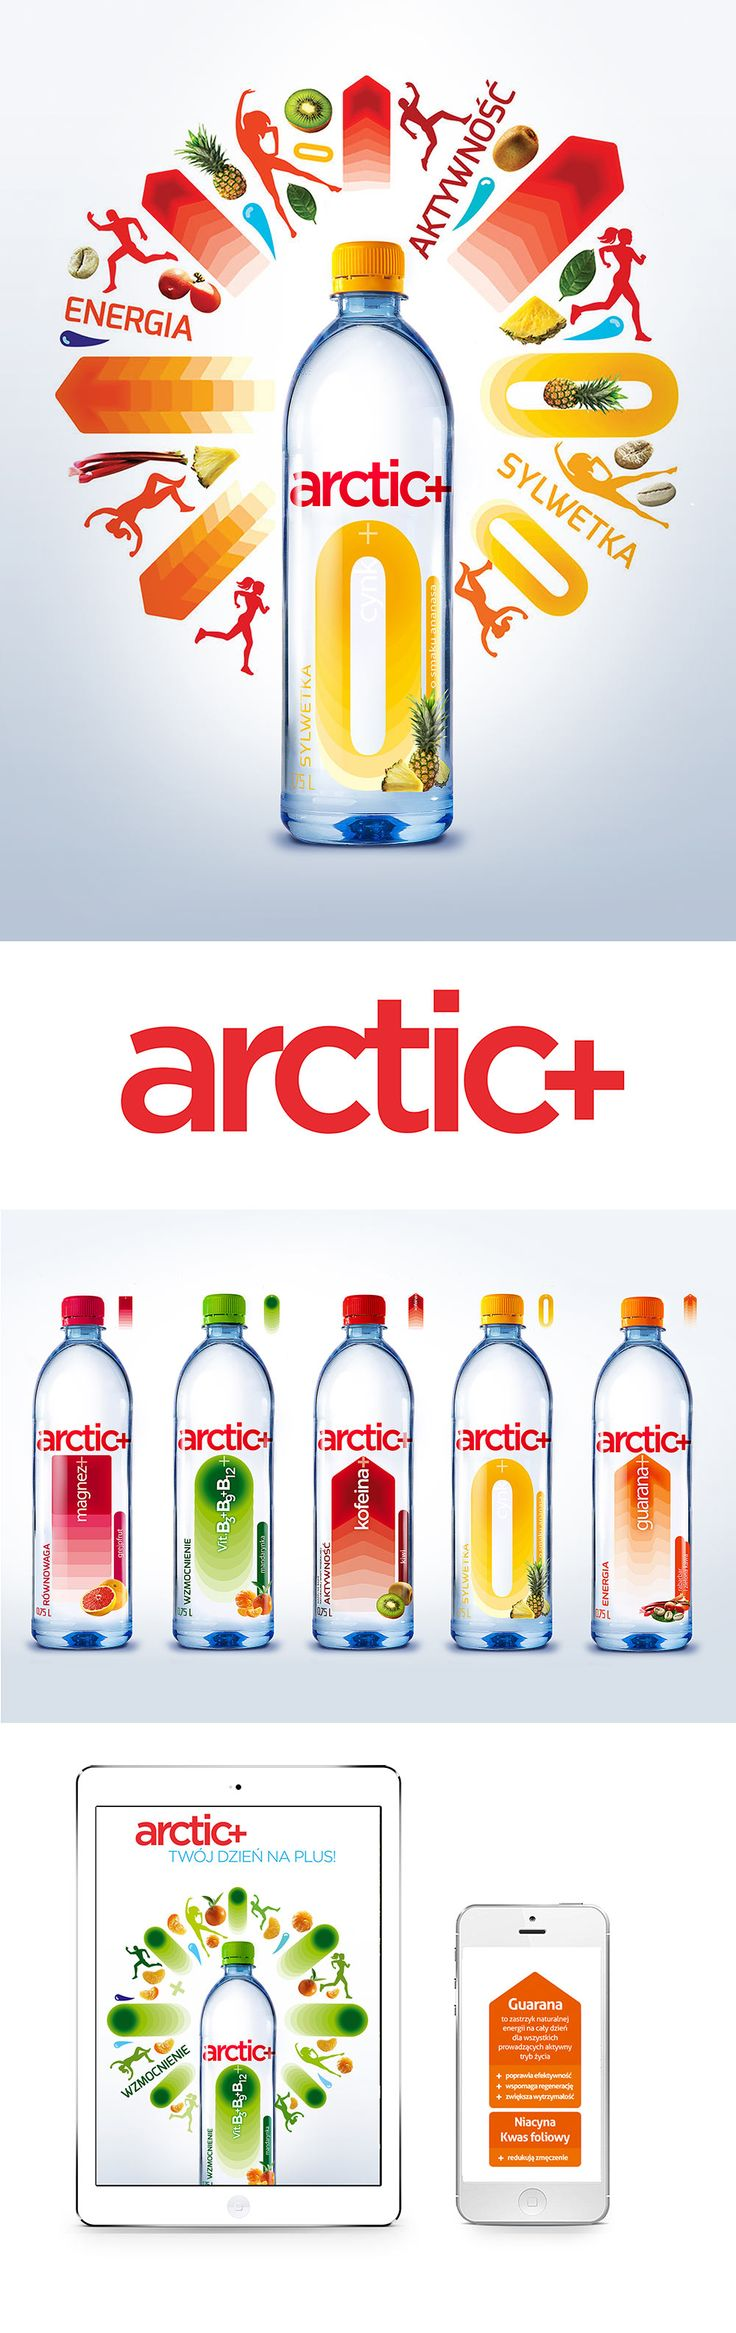 arctic+ mineral water packaging design  #packaging #packagingdesign #branding #design #beverage #beverages #graphicdesign #symbols #water #FMCG #mineralwater #energy #dynamic #kiwi #guarana #grapefruit #pineapple #caffeine #fitness #fit #health #stamina